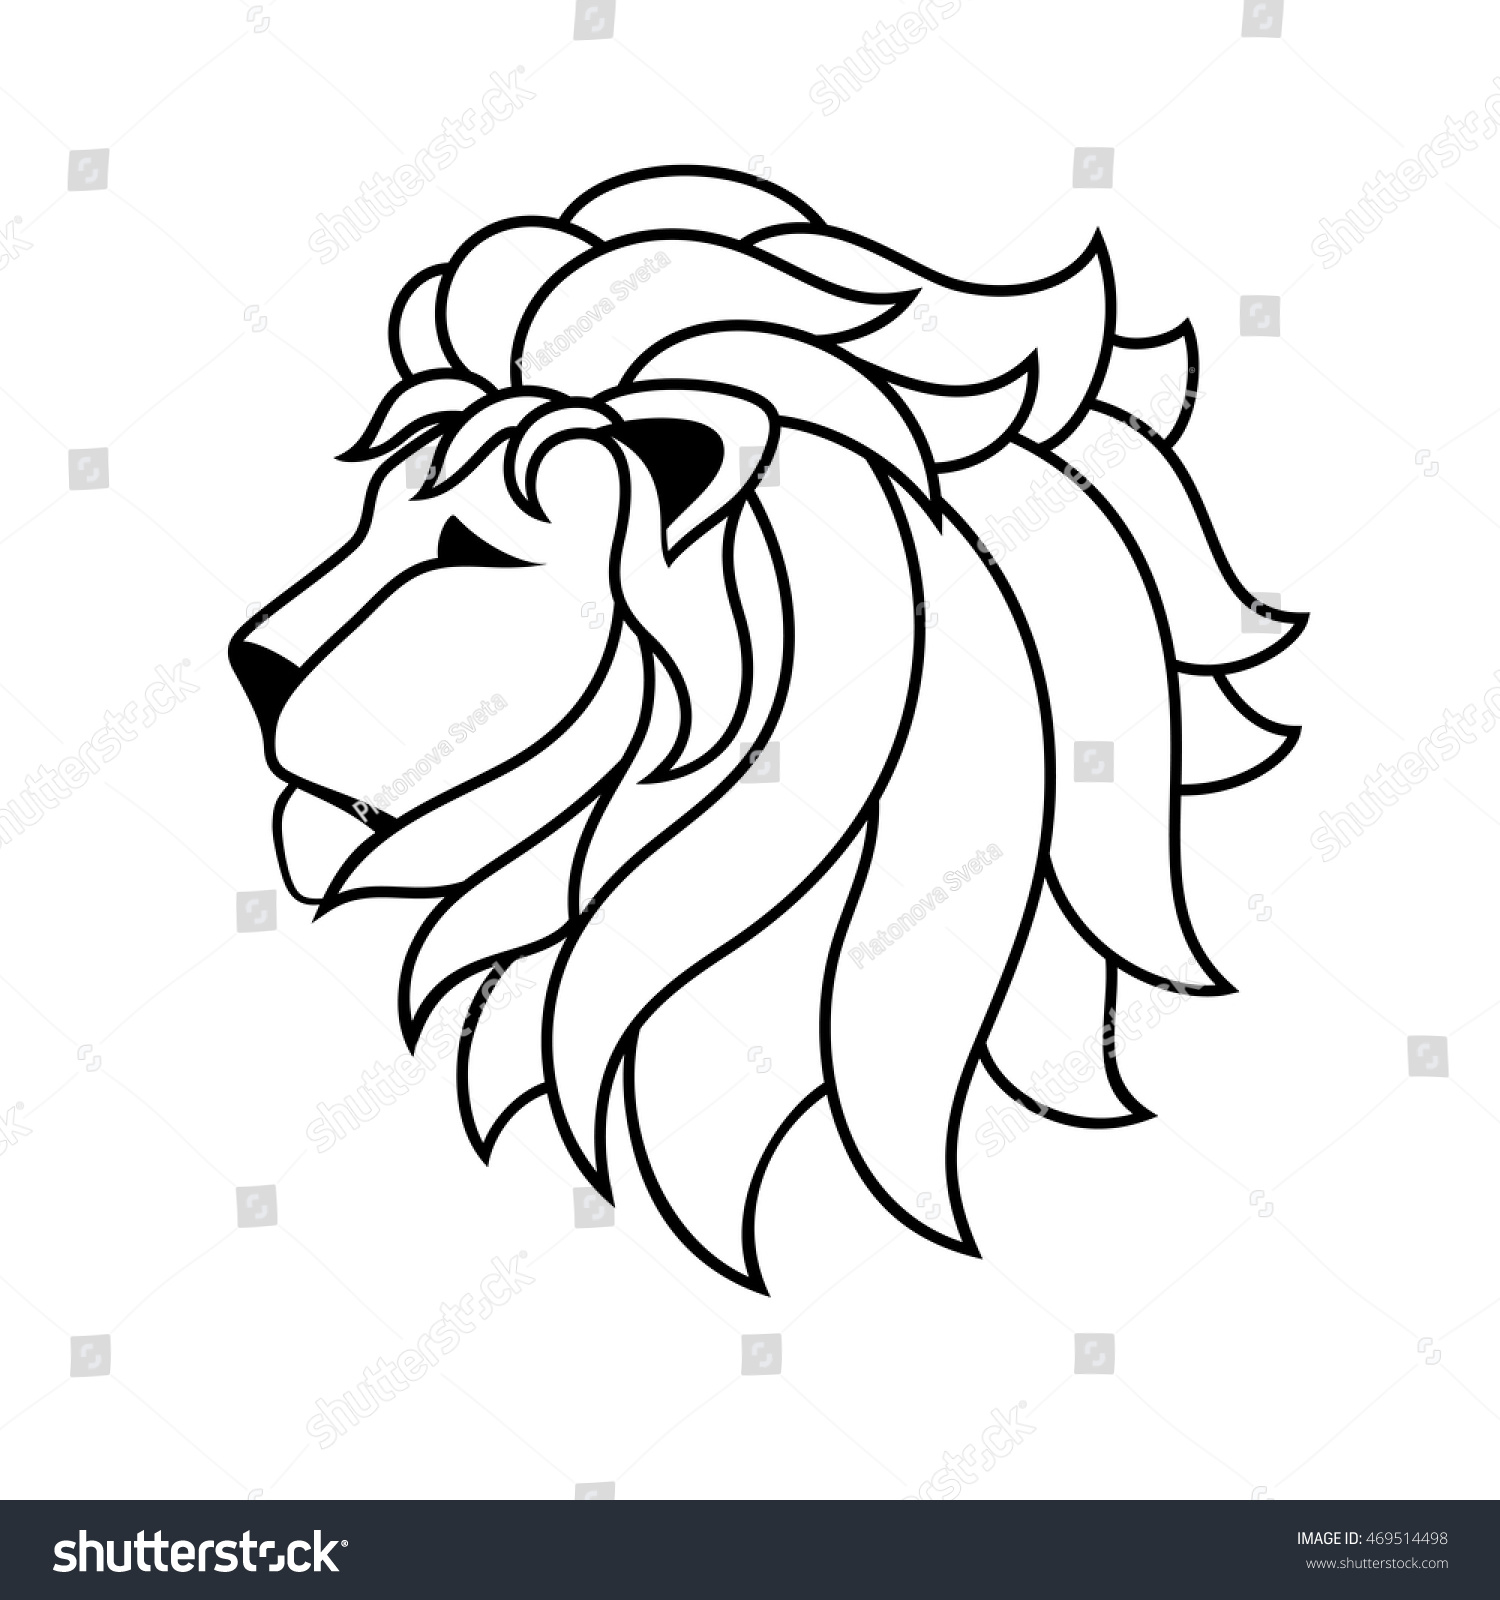 lion line drawing template tshirts coloring stock vector royalty